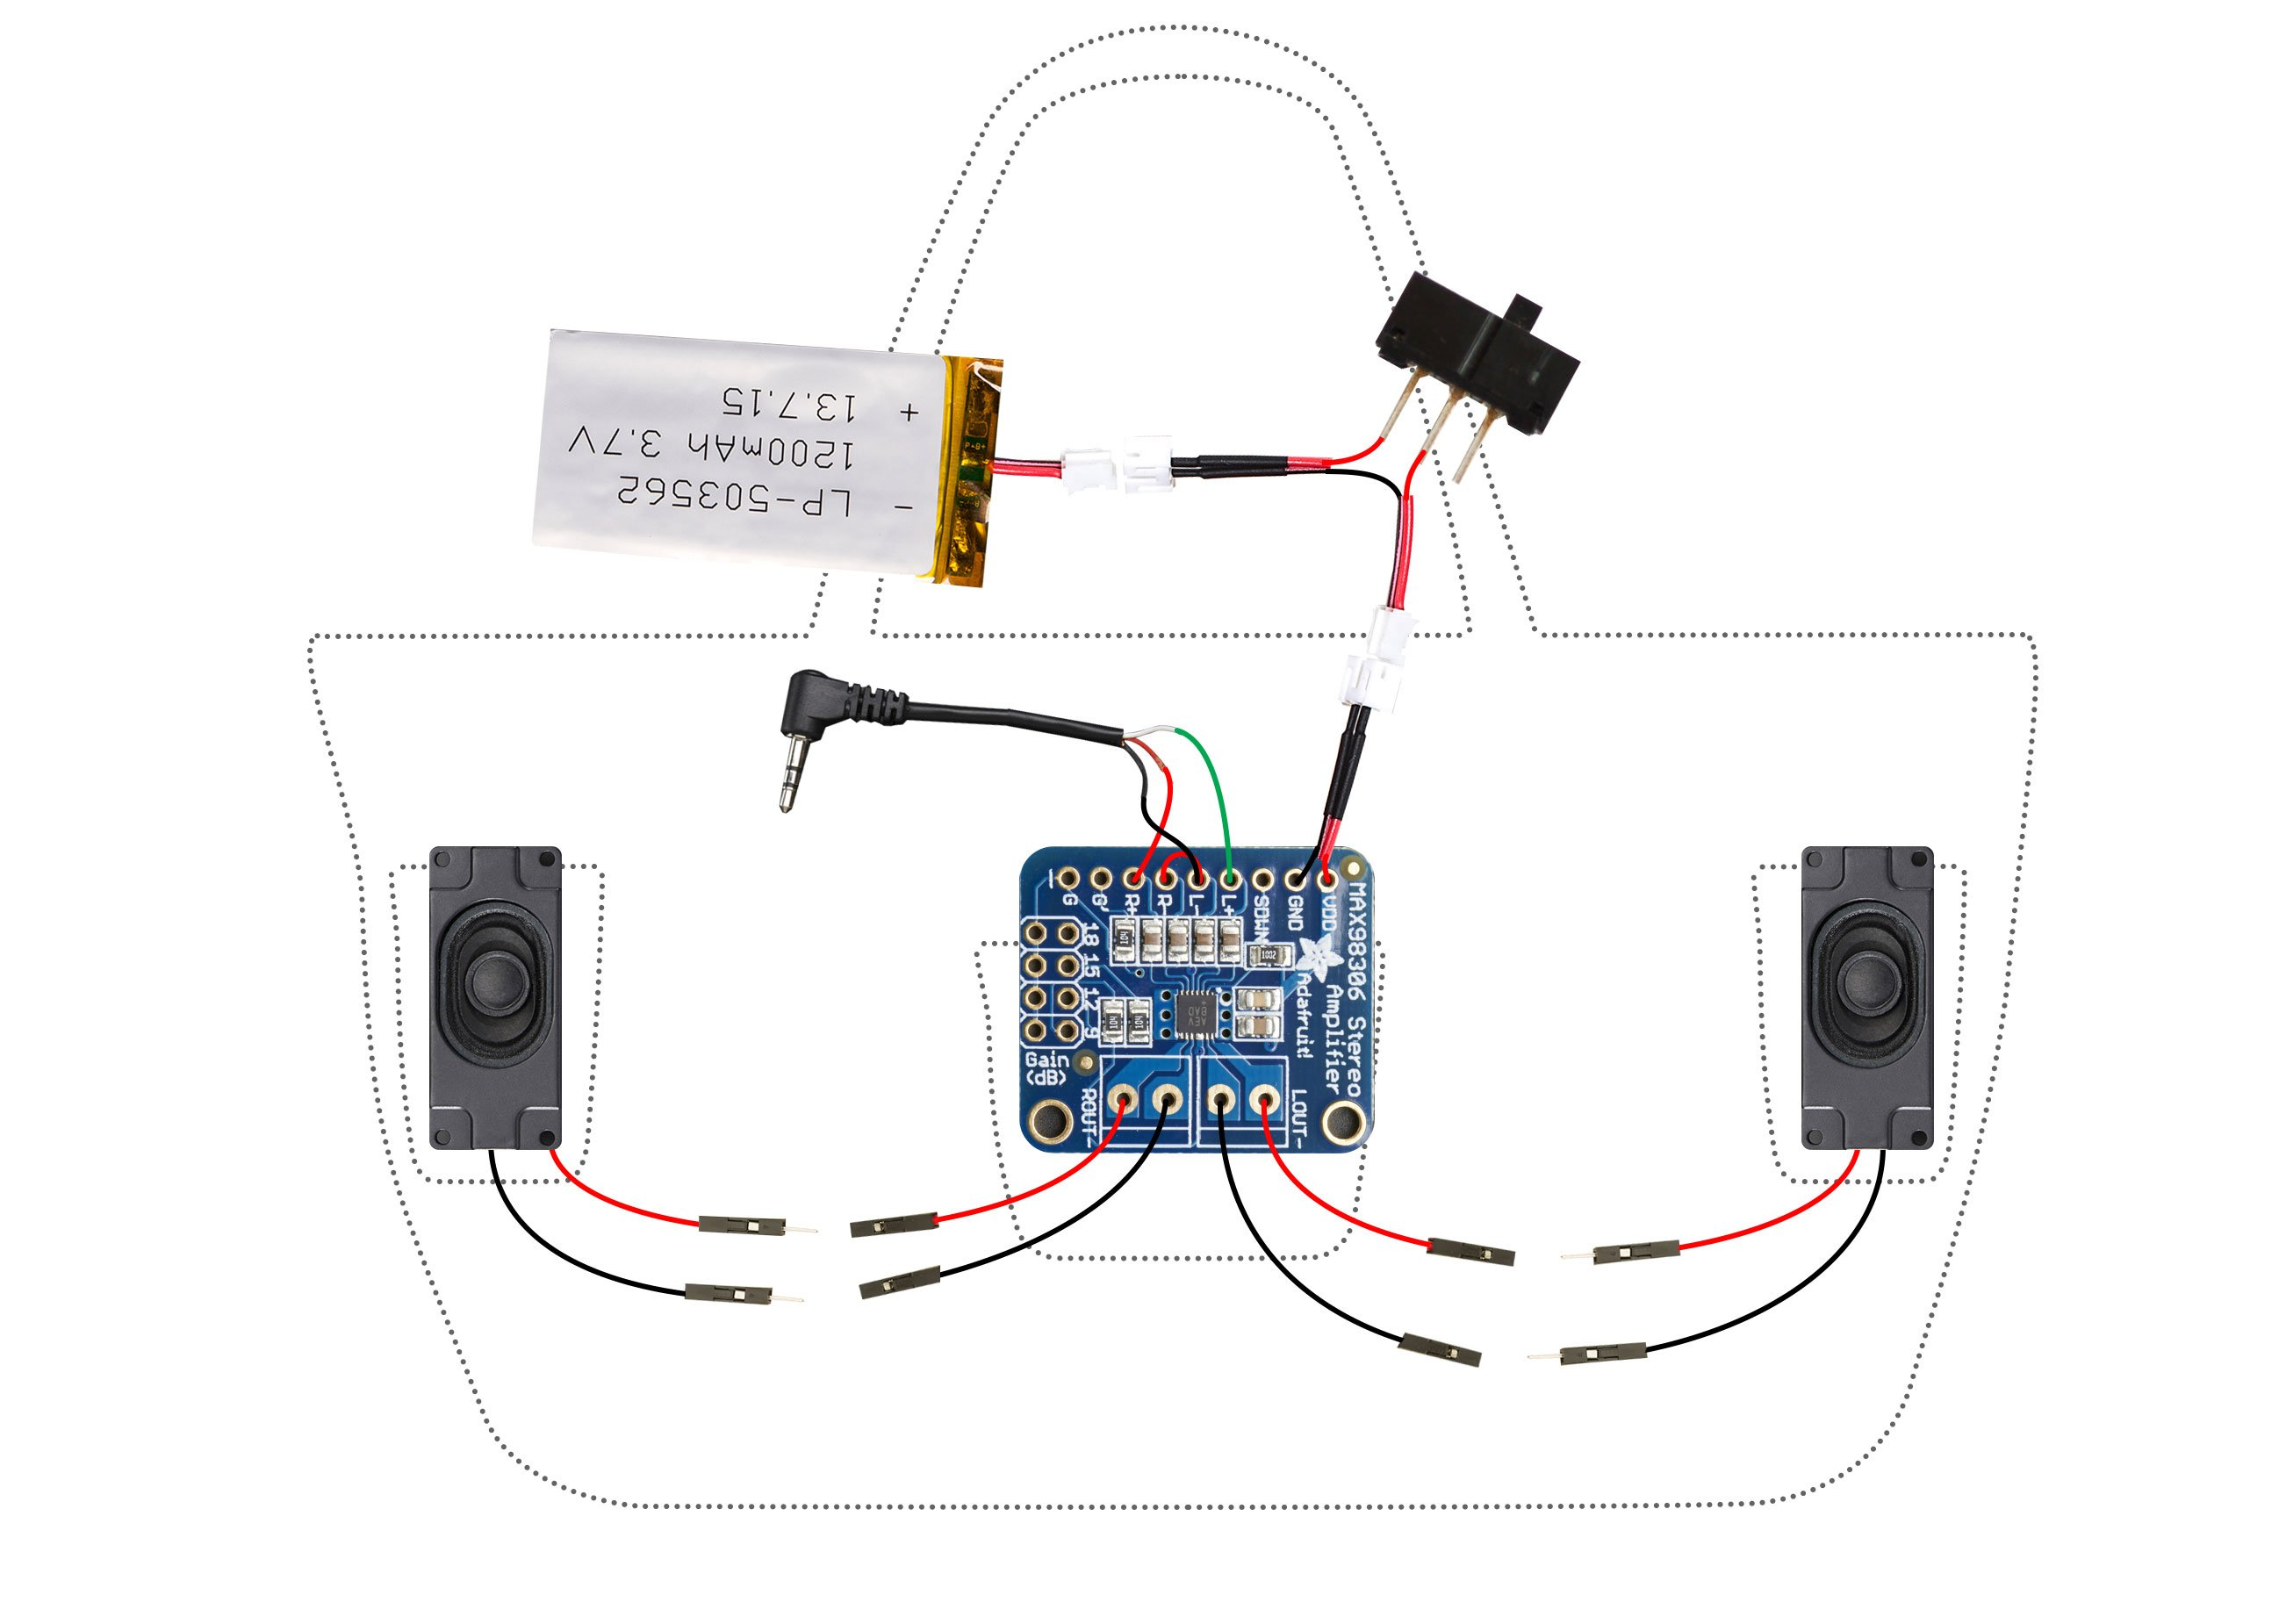 Circuit Diagram Boombox Beach Bag With Audio Amp And Speakers Electronics Circuits Students Wiring